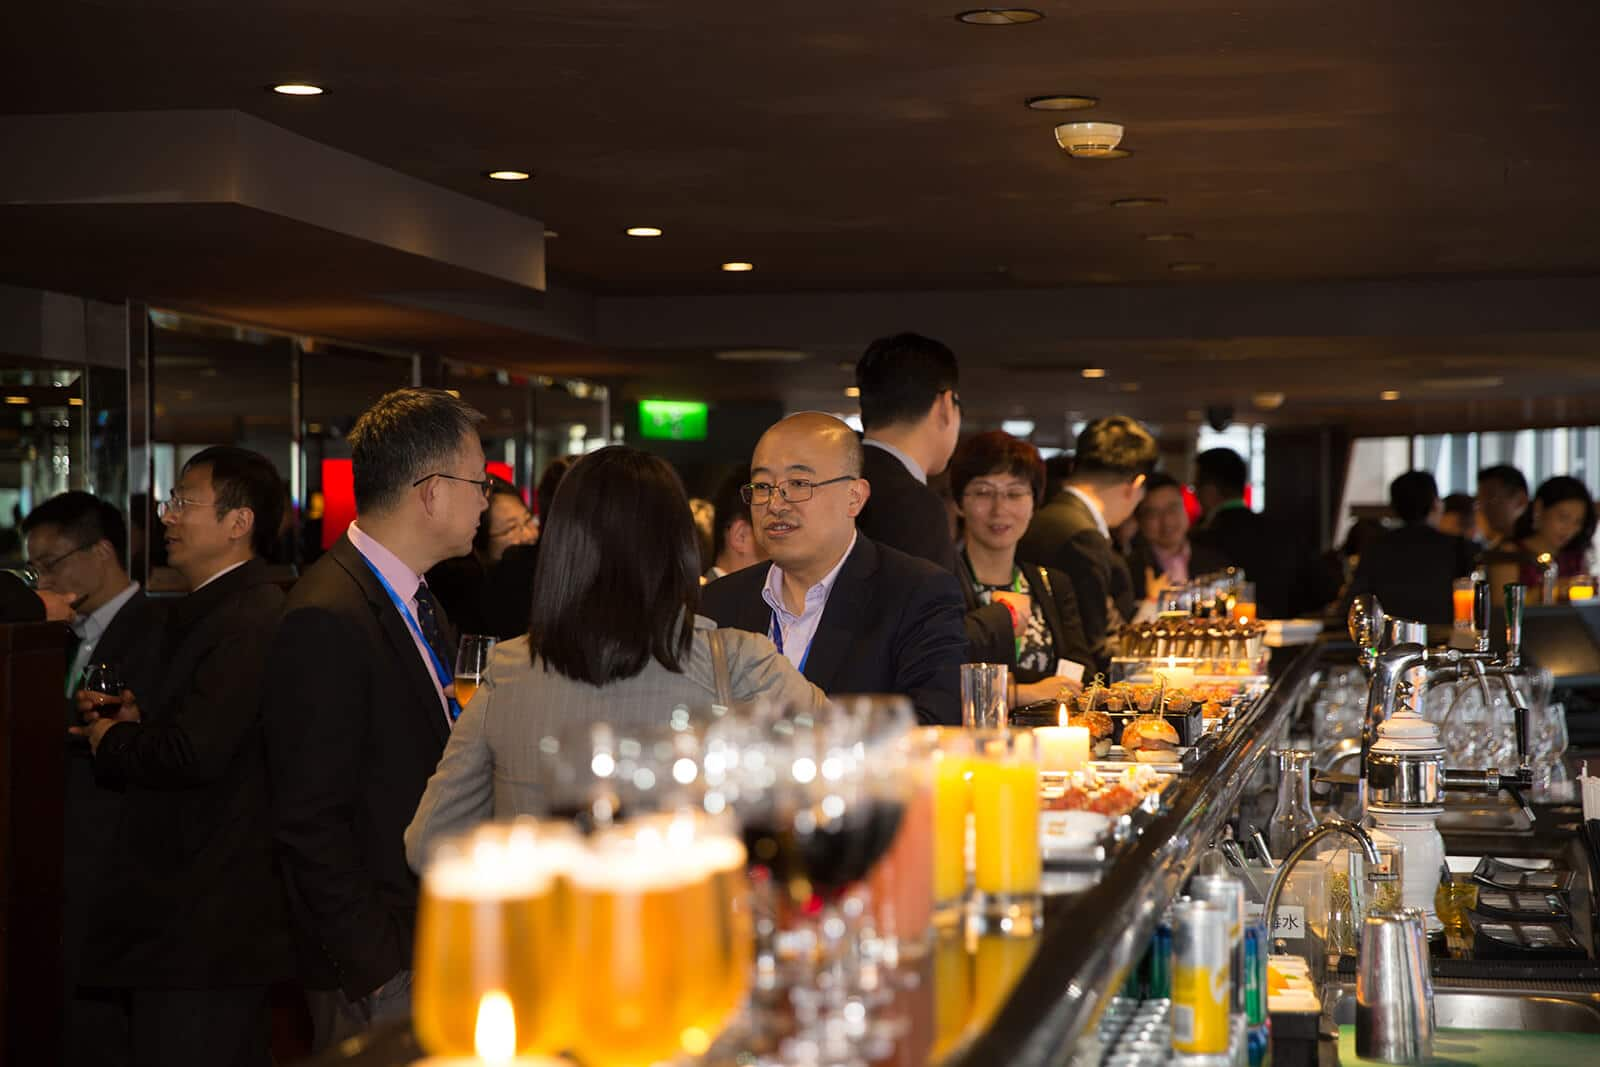 party-3-2017-global-general-counsels-and-business-leaders-shanghai-forum